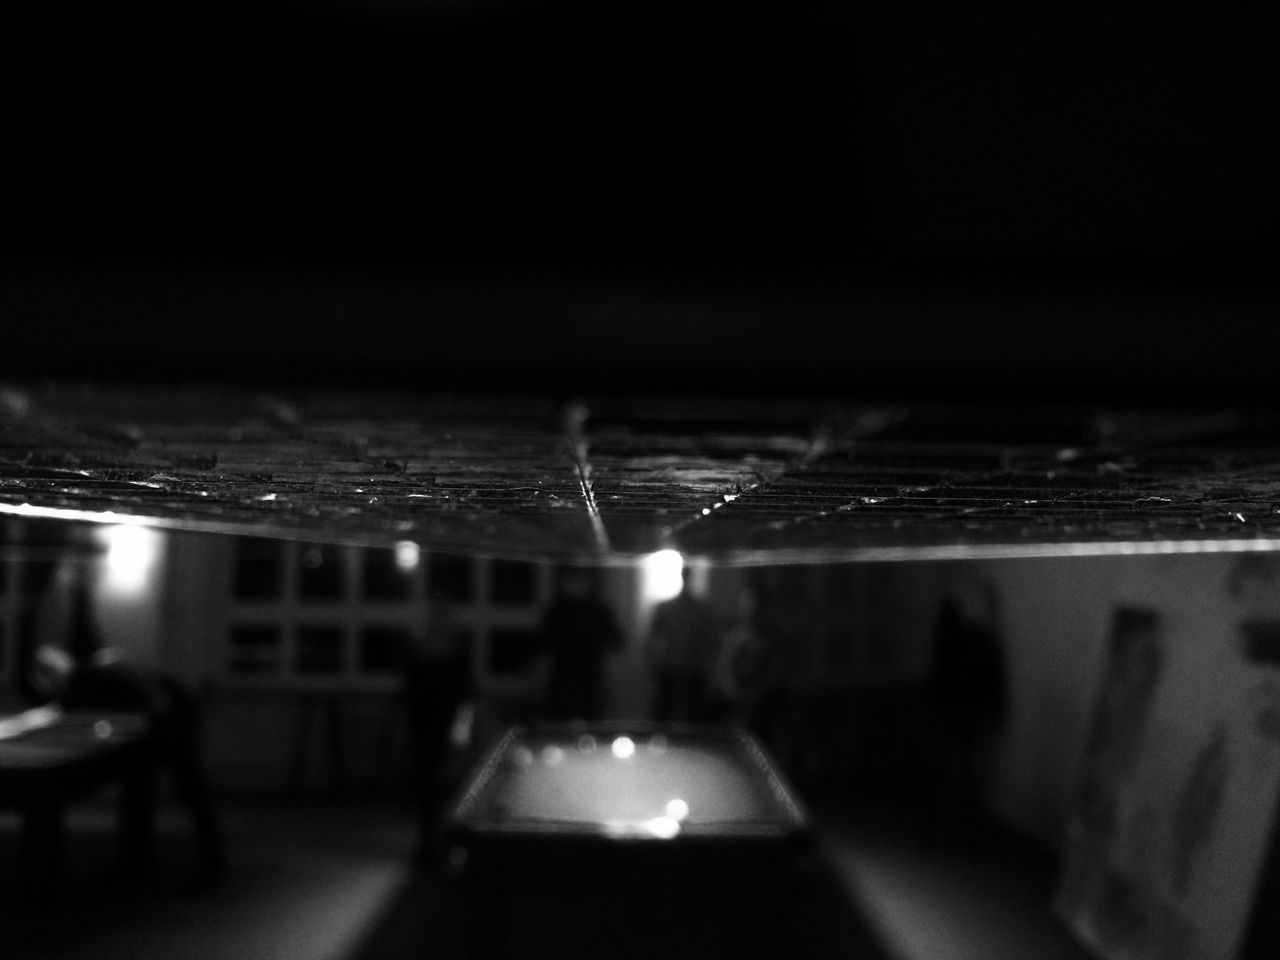 Blurred People Playing Snooker